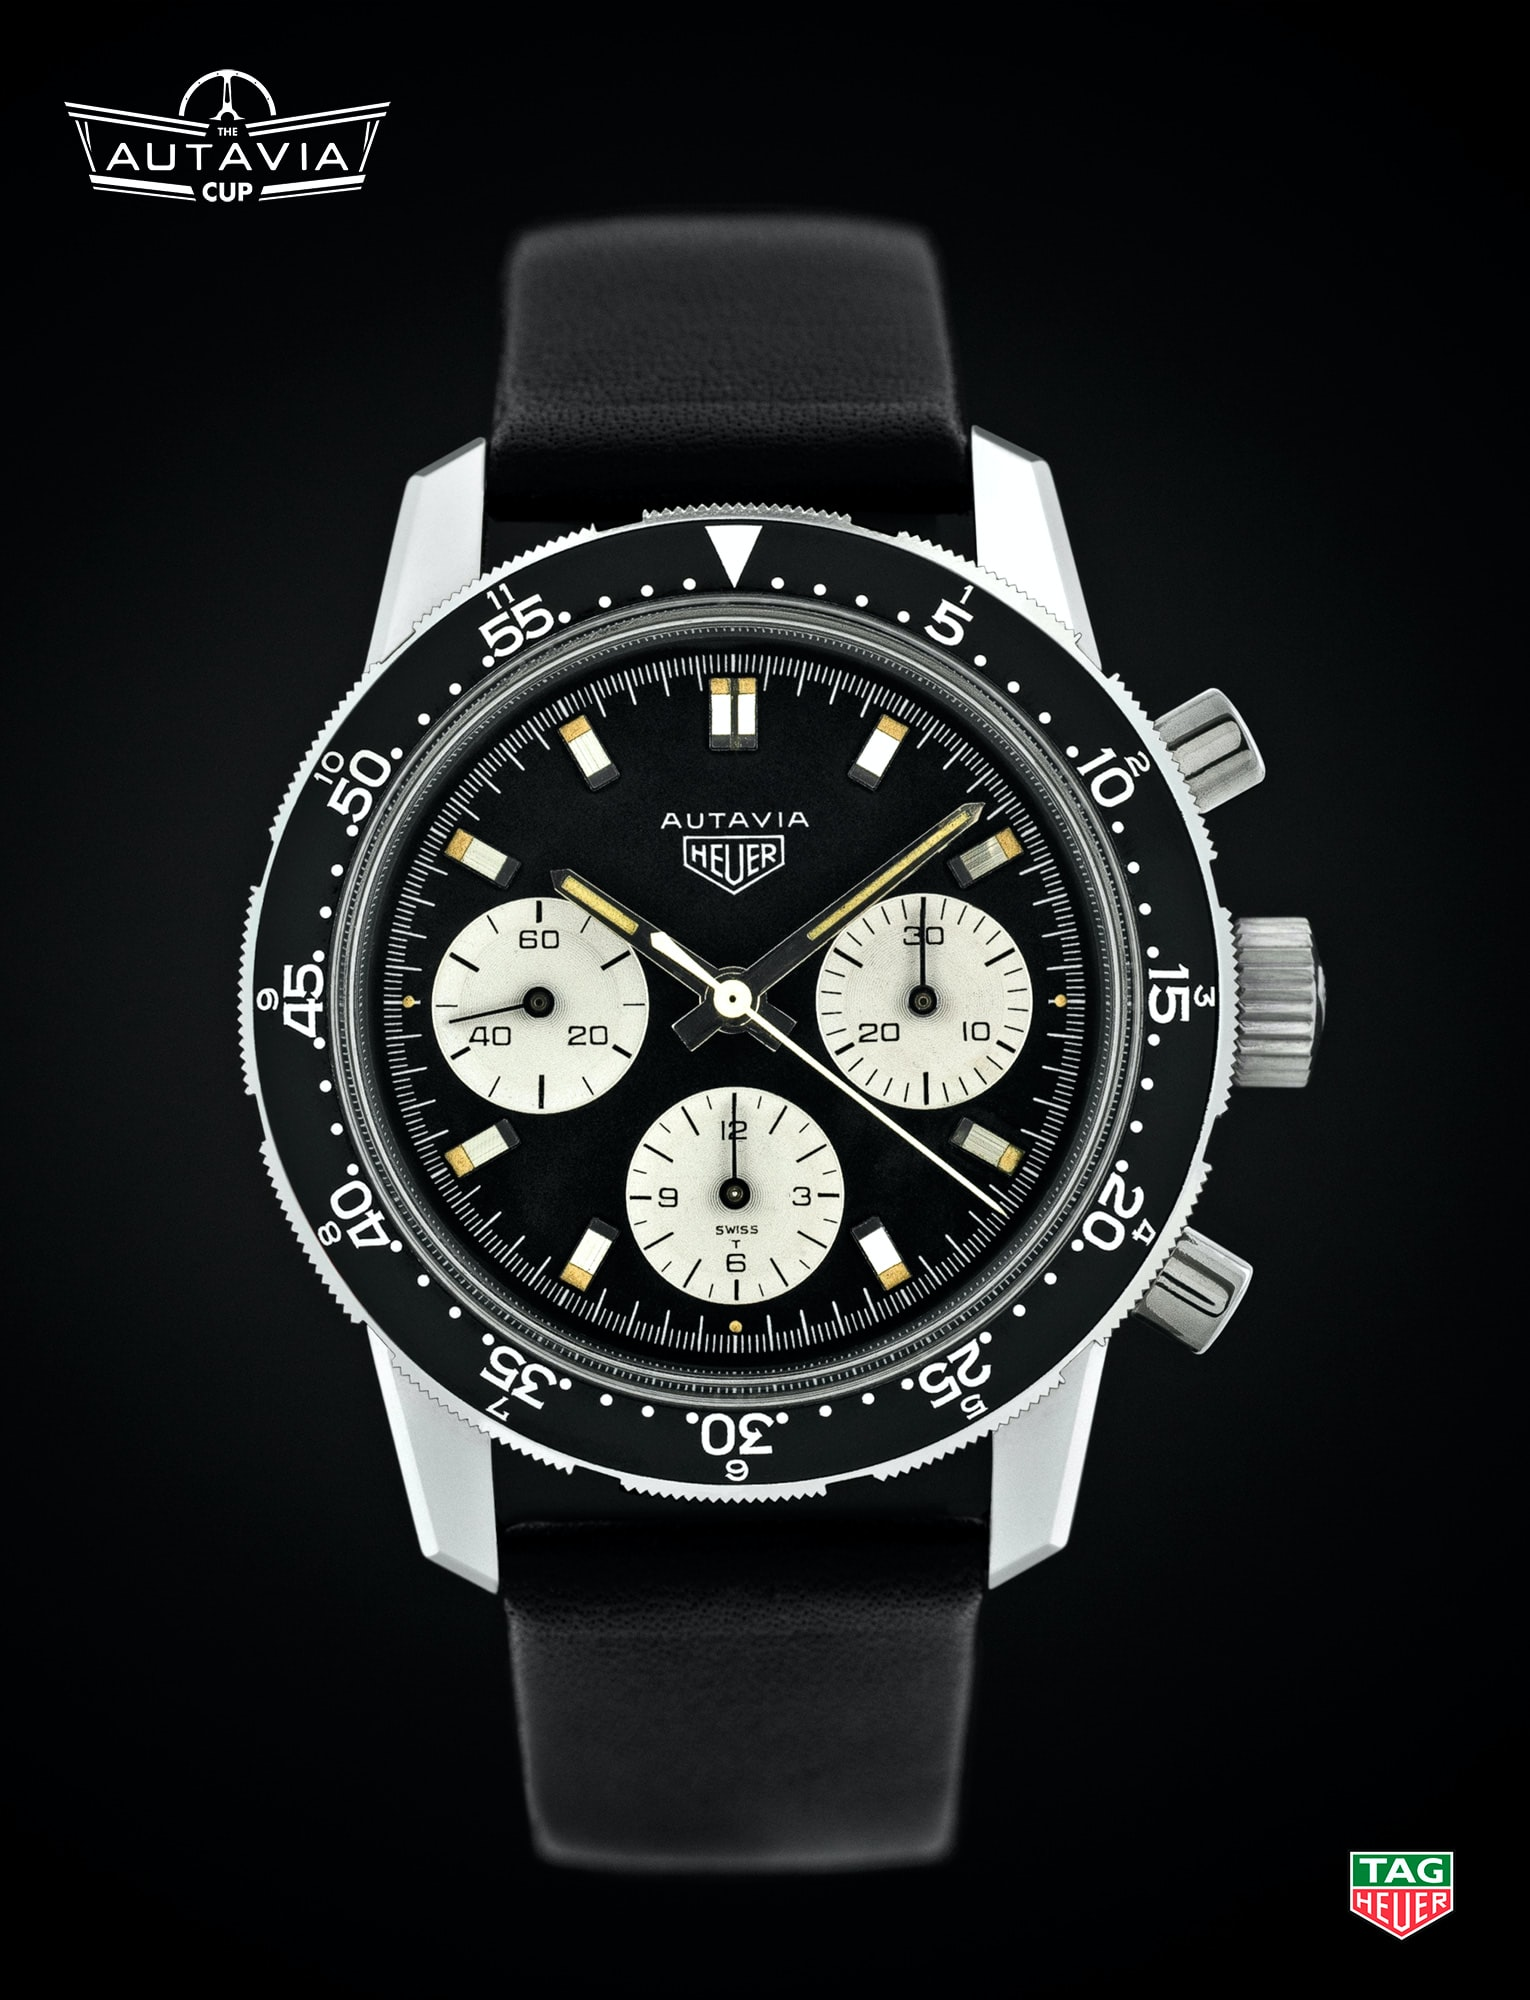 Heuer Autavia Ref. 2446c NS TAG Heuer Will Relaunch The Autavia In 2017 – And Fans Get To Choose The Model TAG Heuer Will Relaunch The Autavia In 2017 – And Fans Get To Choose The Model 11 2446c NS